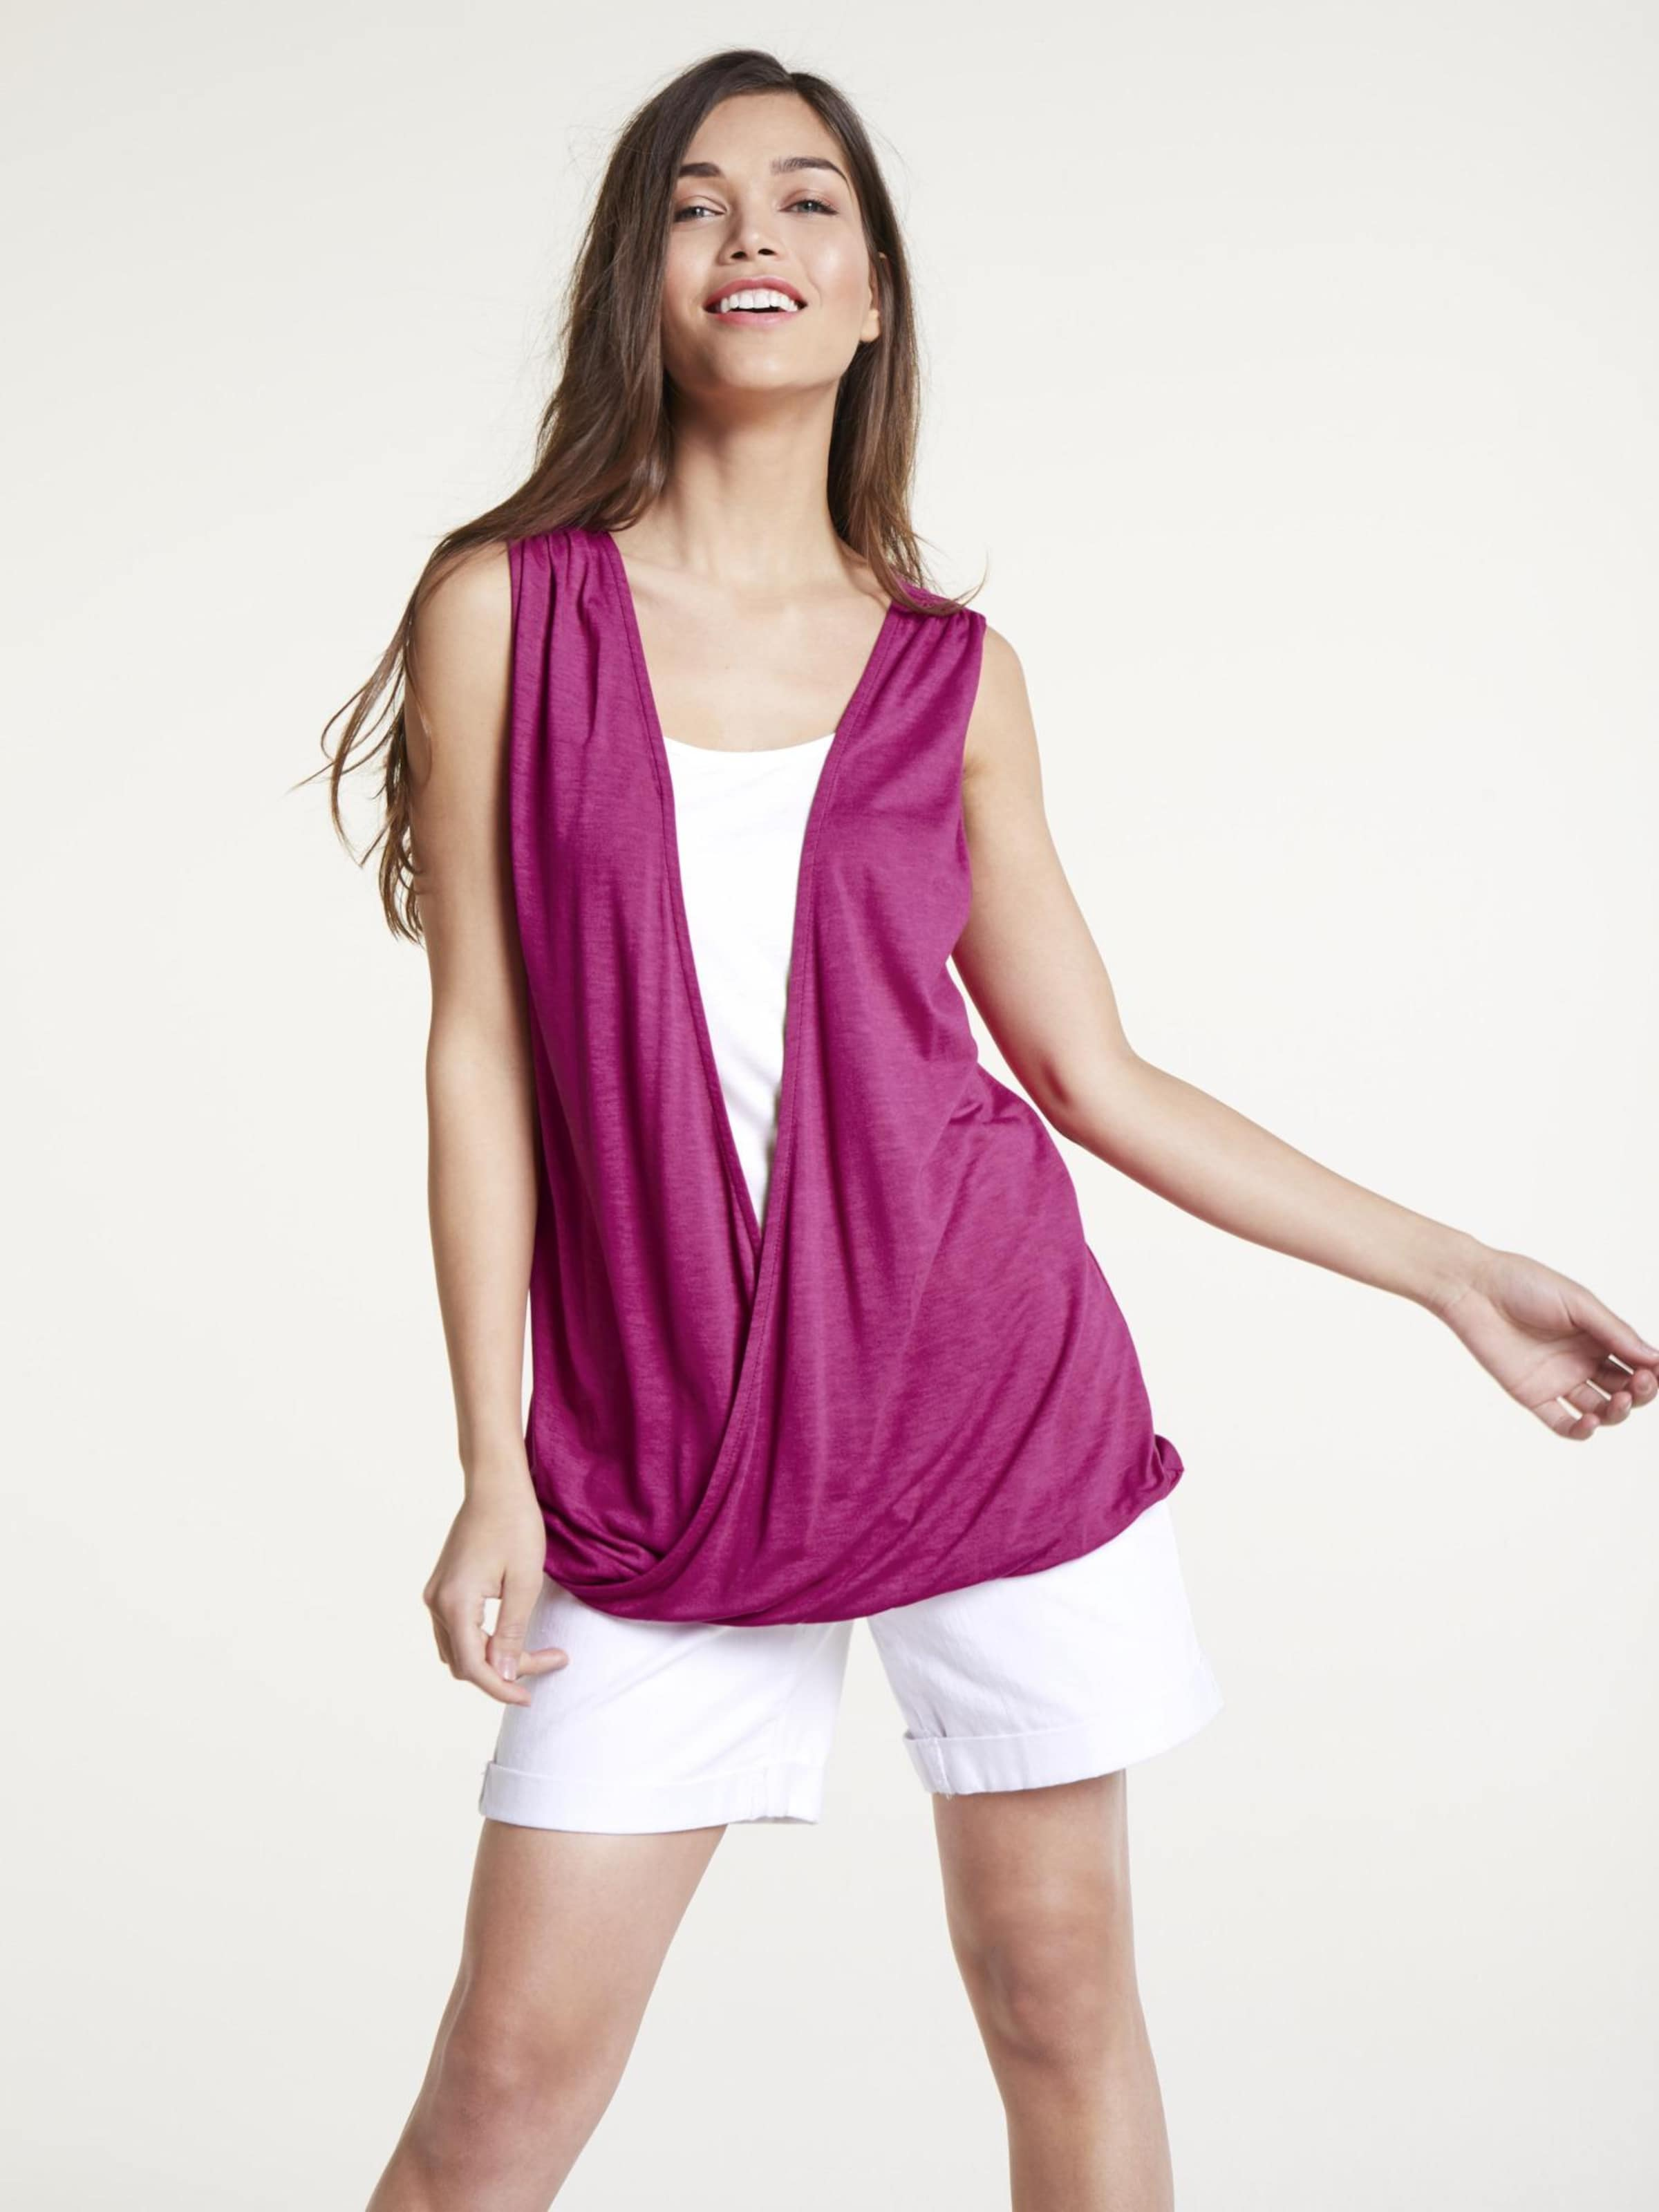 Beere Shirttop 'casual' Shirttop Heine 'casual' Heine 'casual' Heine Shirttop In In In Beere 8k0XnwPNO